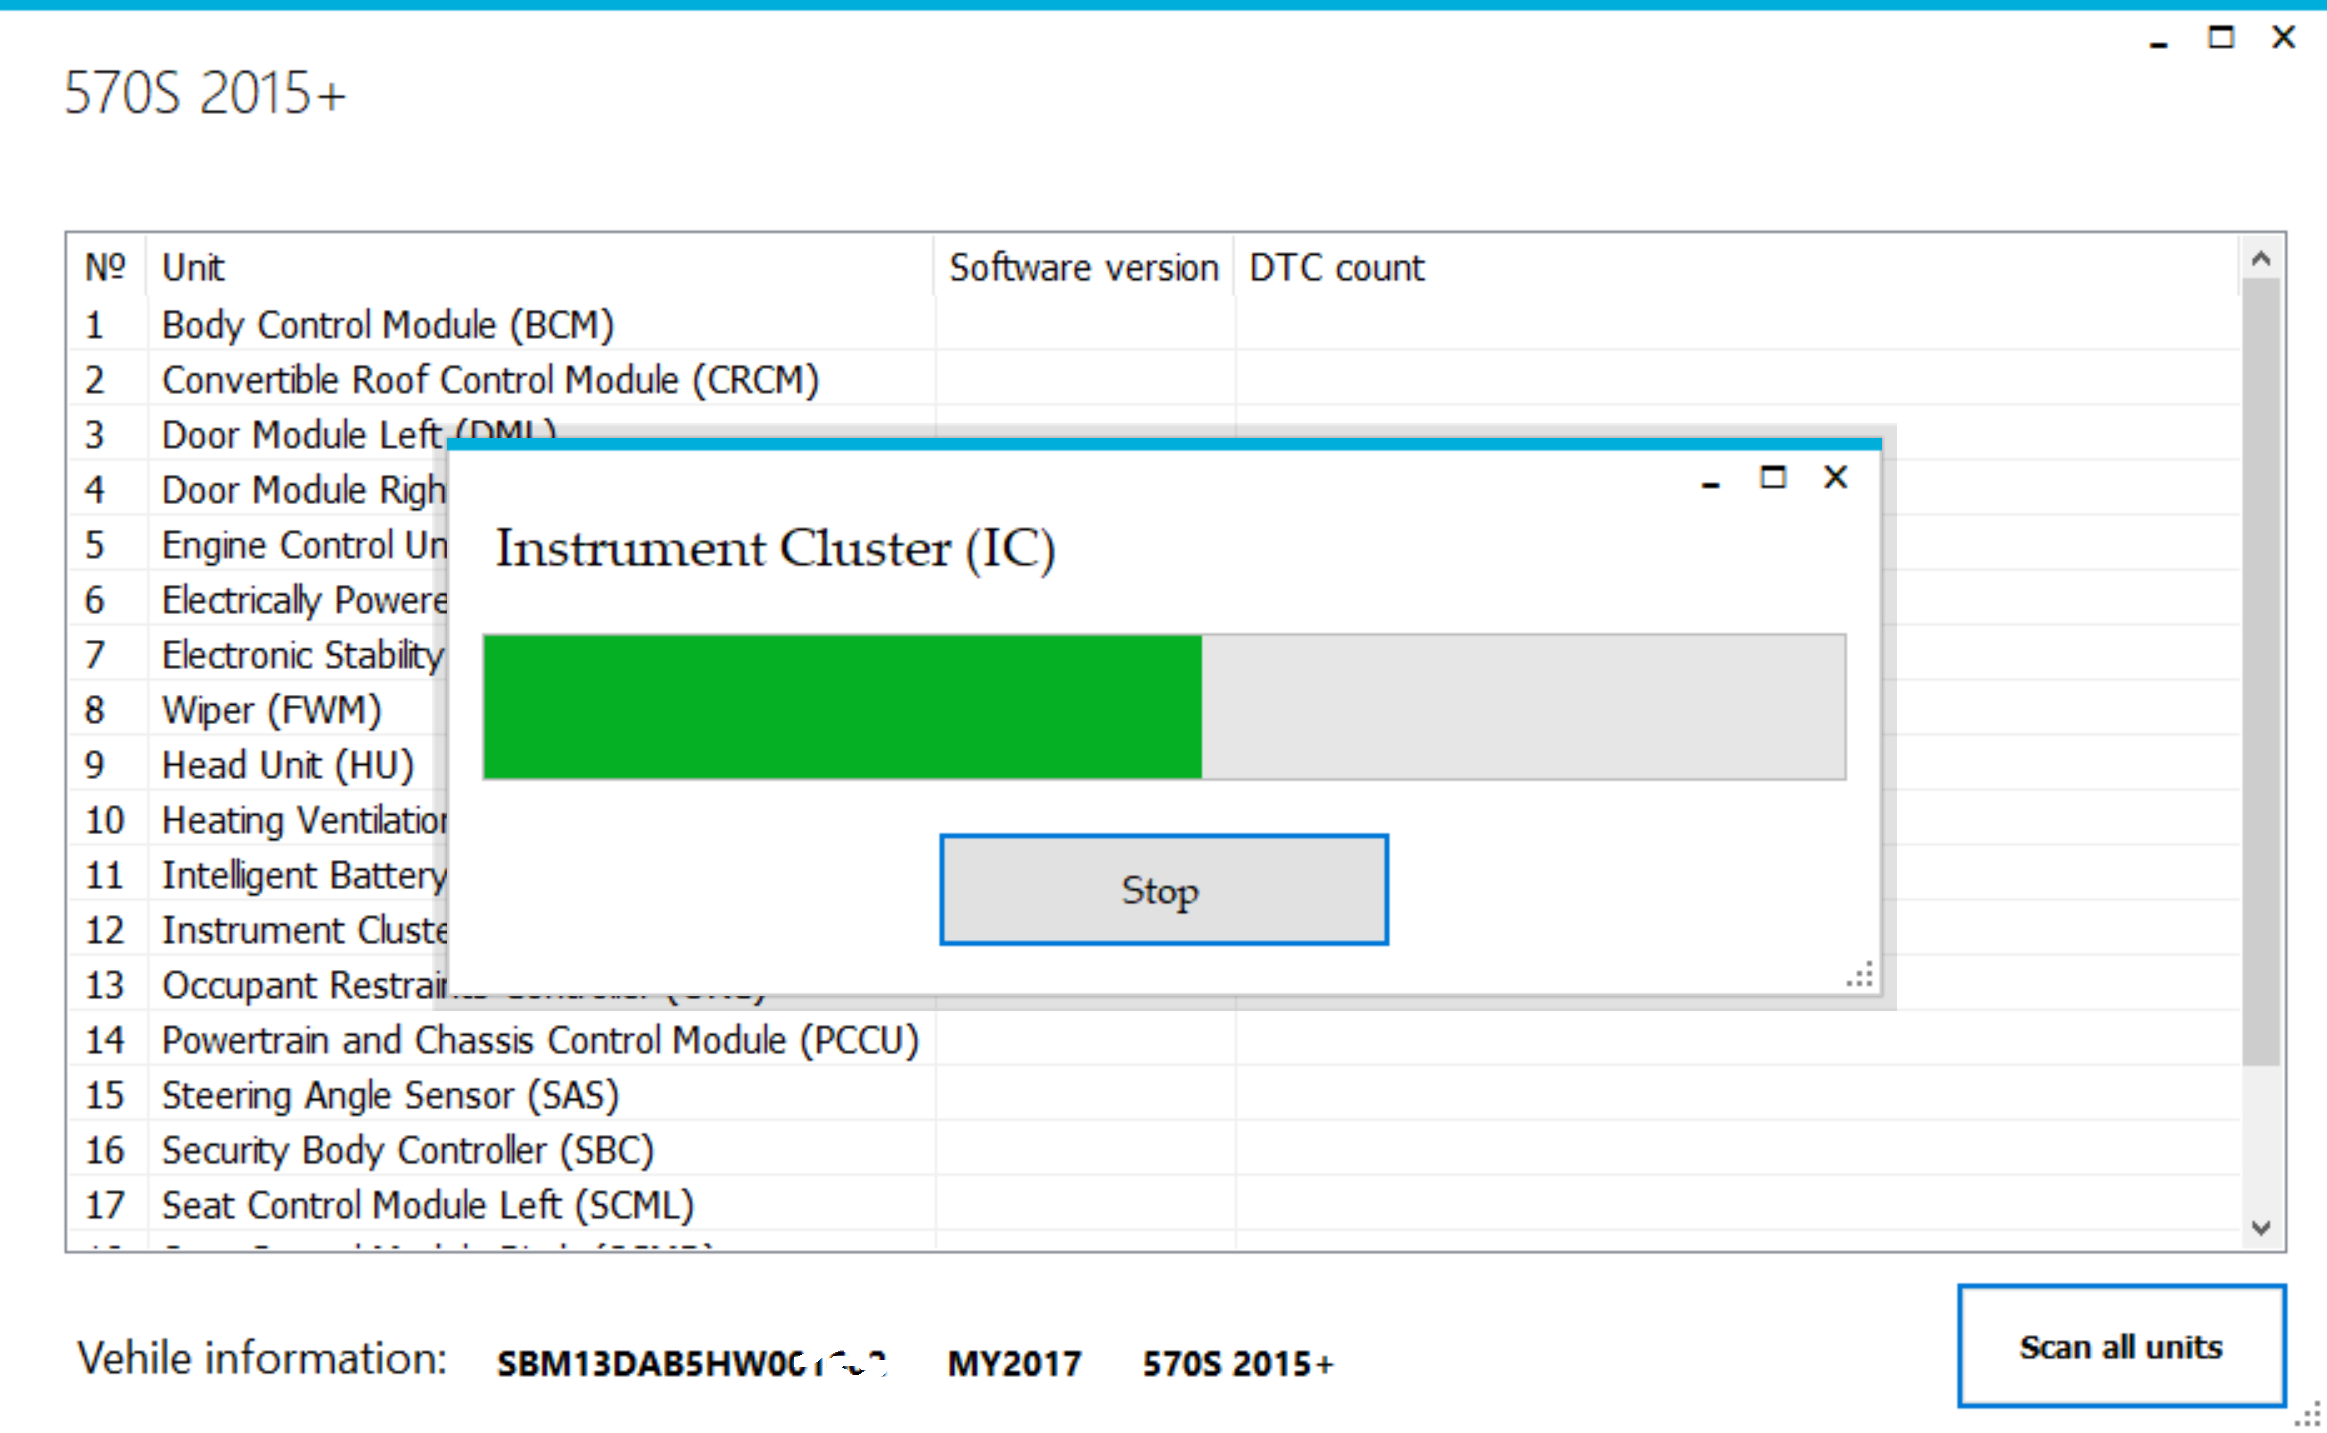 Scan the available modules in the vehicle and clear all DTCs